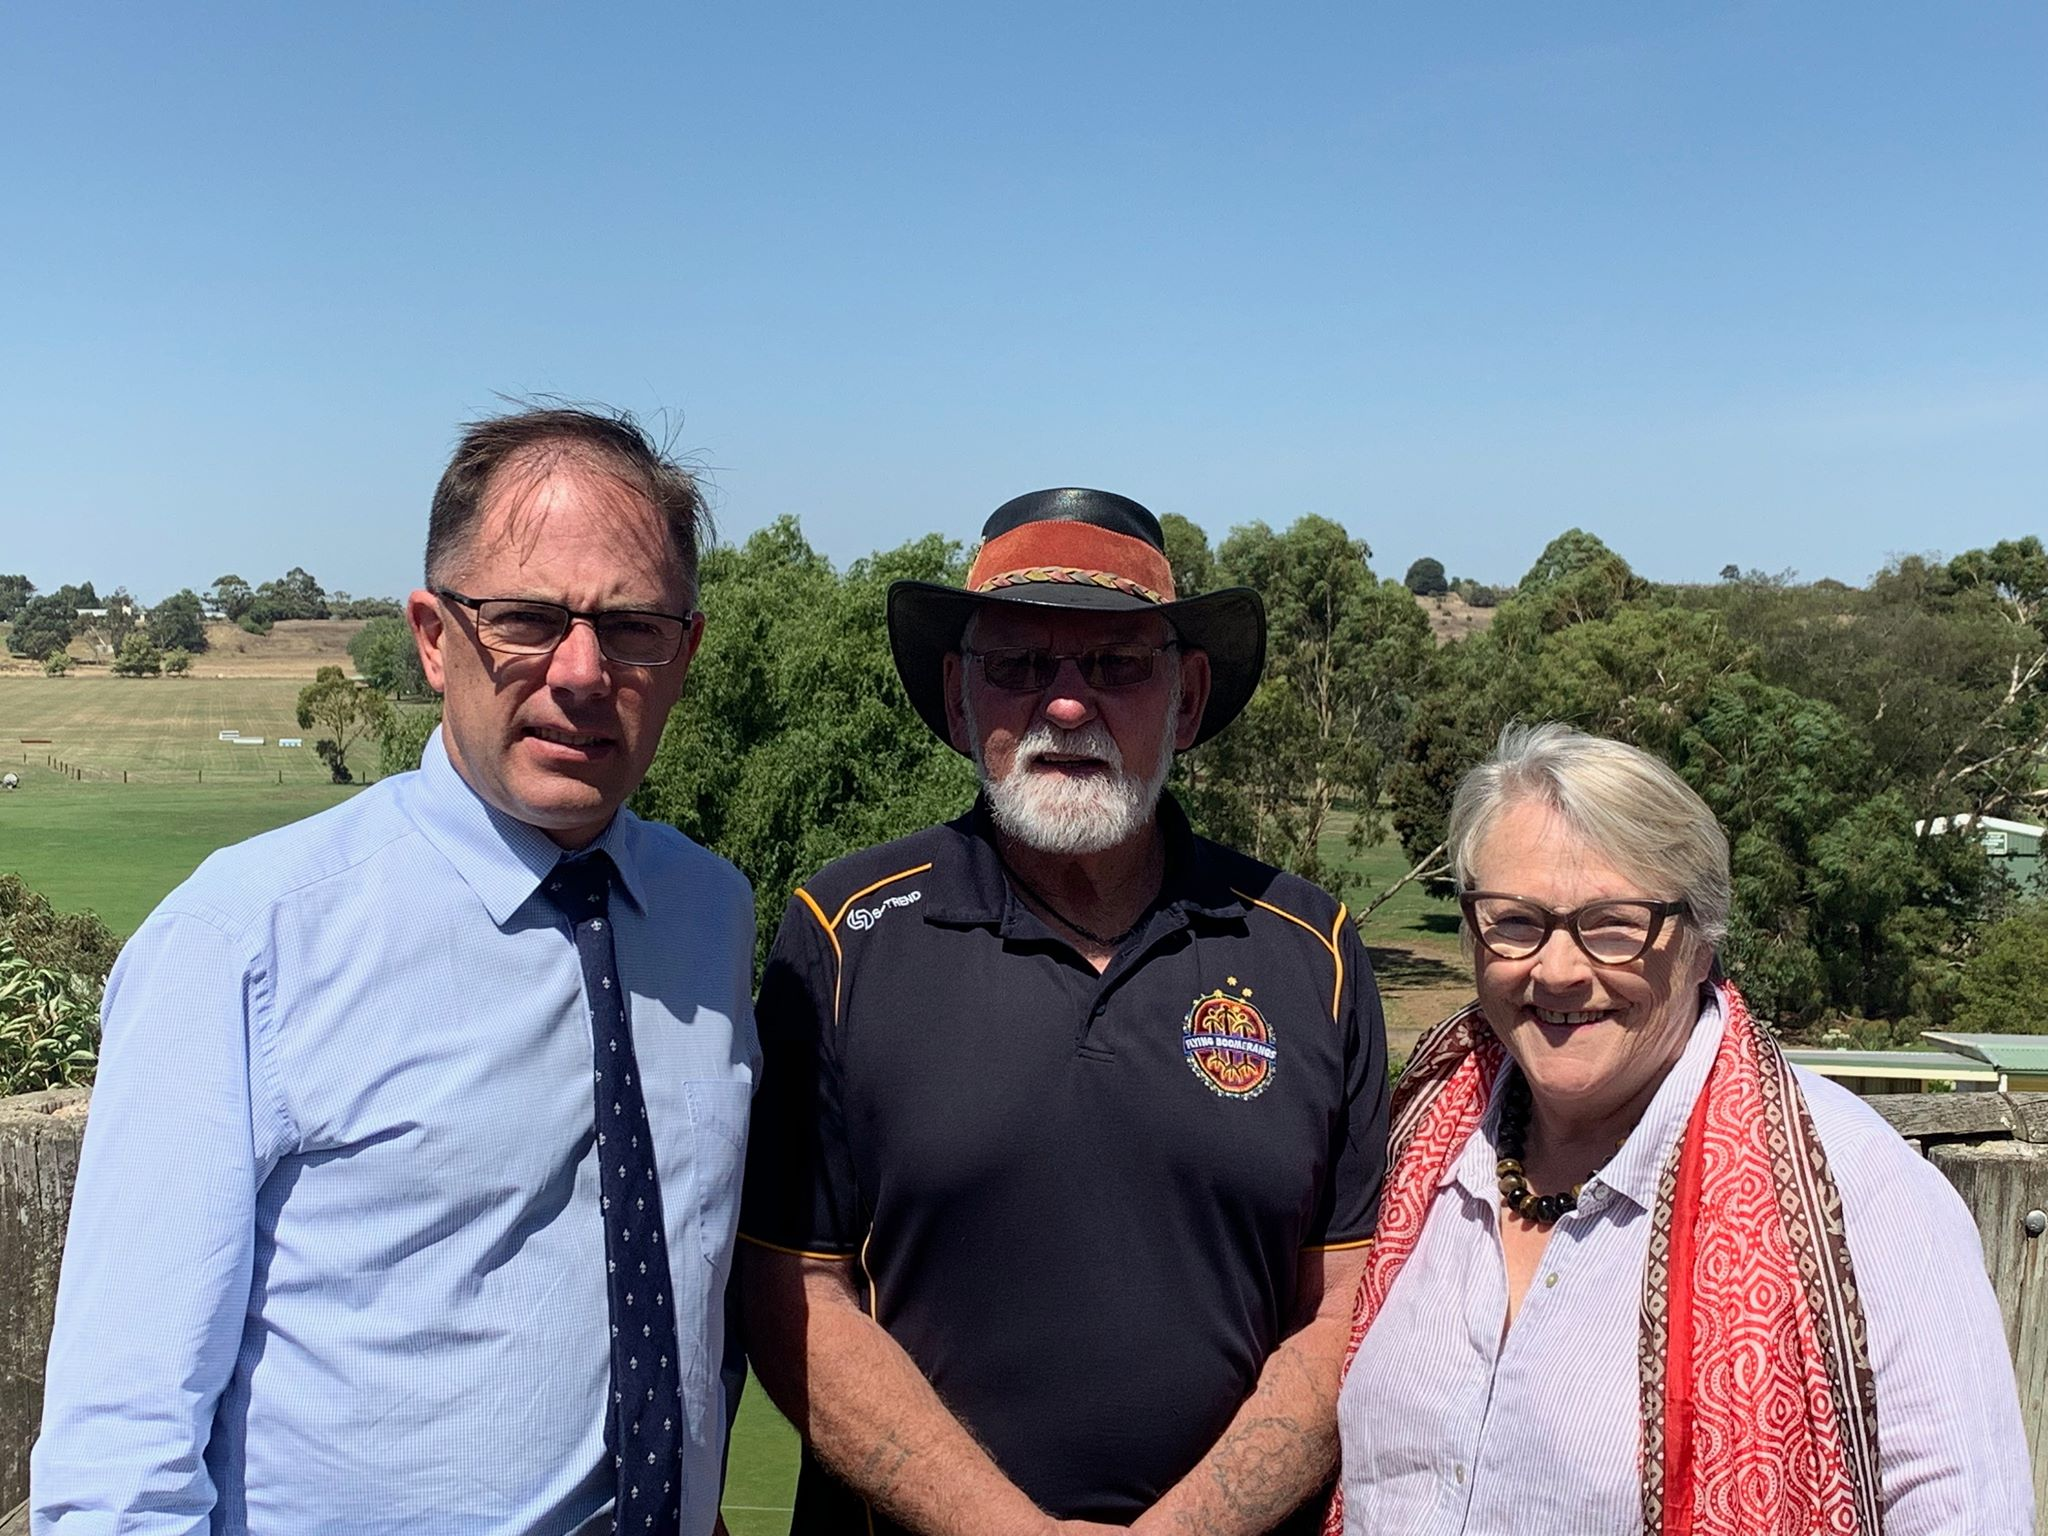 Richard Riordan MP, Member for Polwarth and I with Robert Lowe, Peek Whurrong elder in Terang, who was helping to advise us on indigenous history and cultural issues across our electorates.